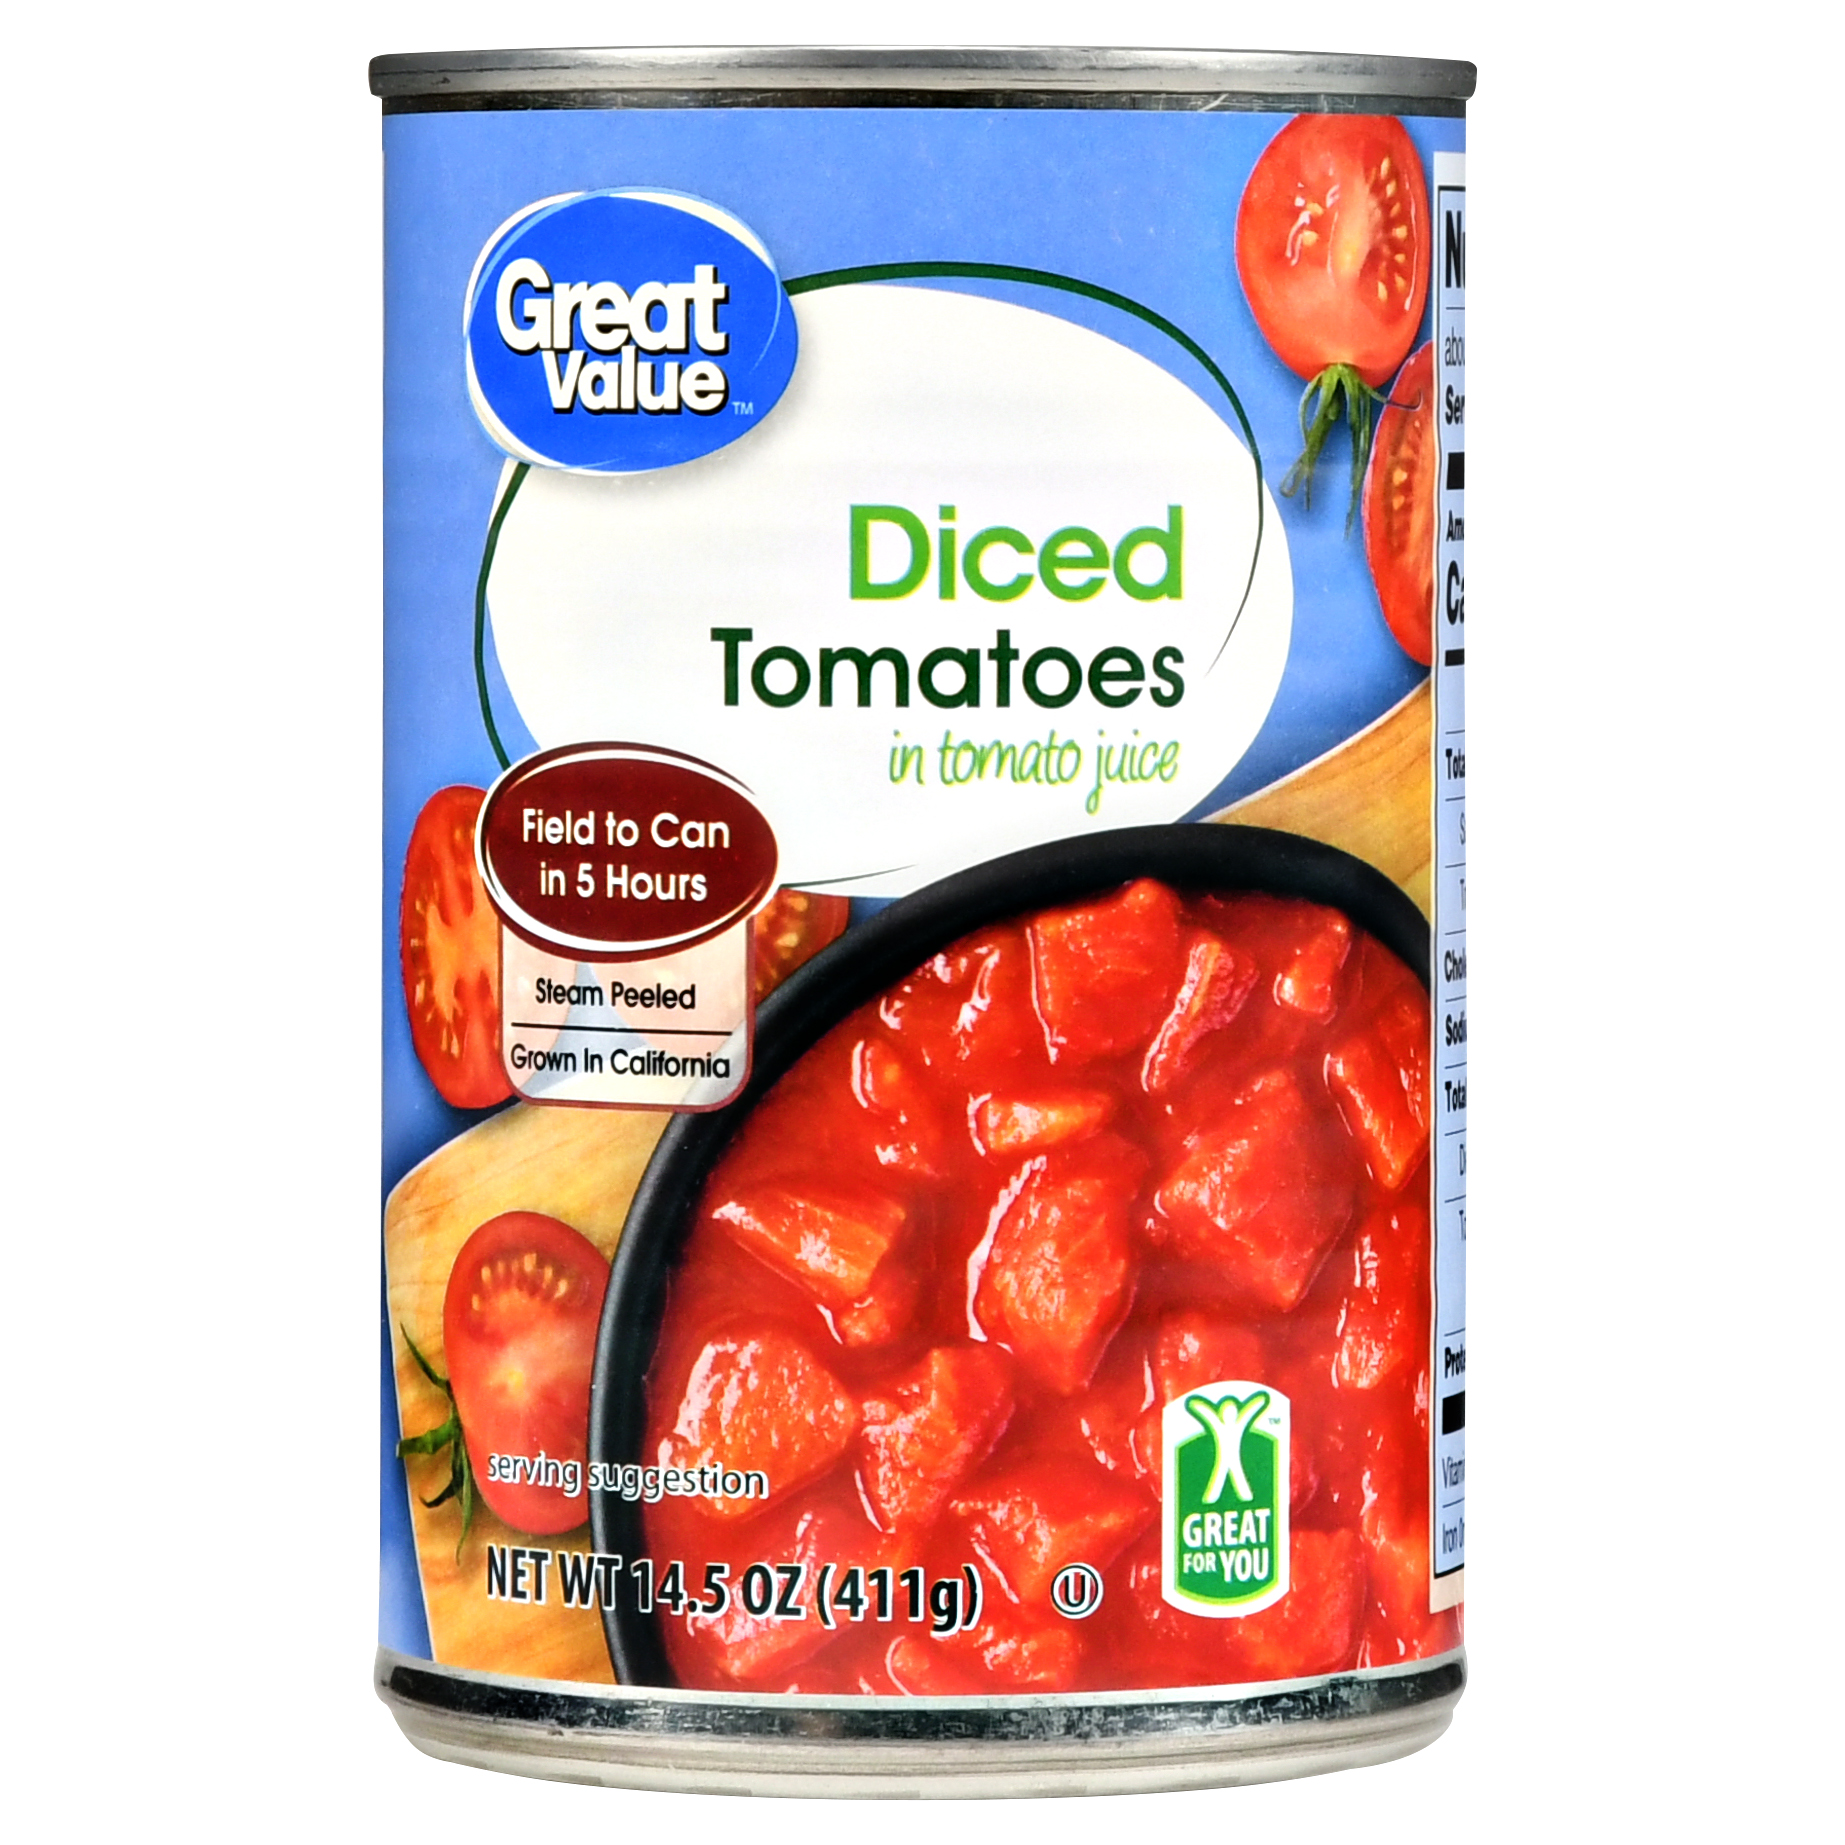 Great Value Diced Tomatoes In Tomato Juice, 14.5 Oz by Wal-Mart Stores, Inc.